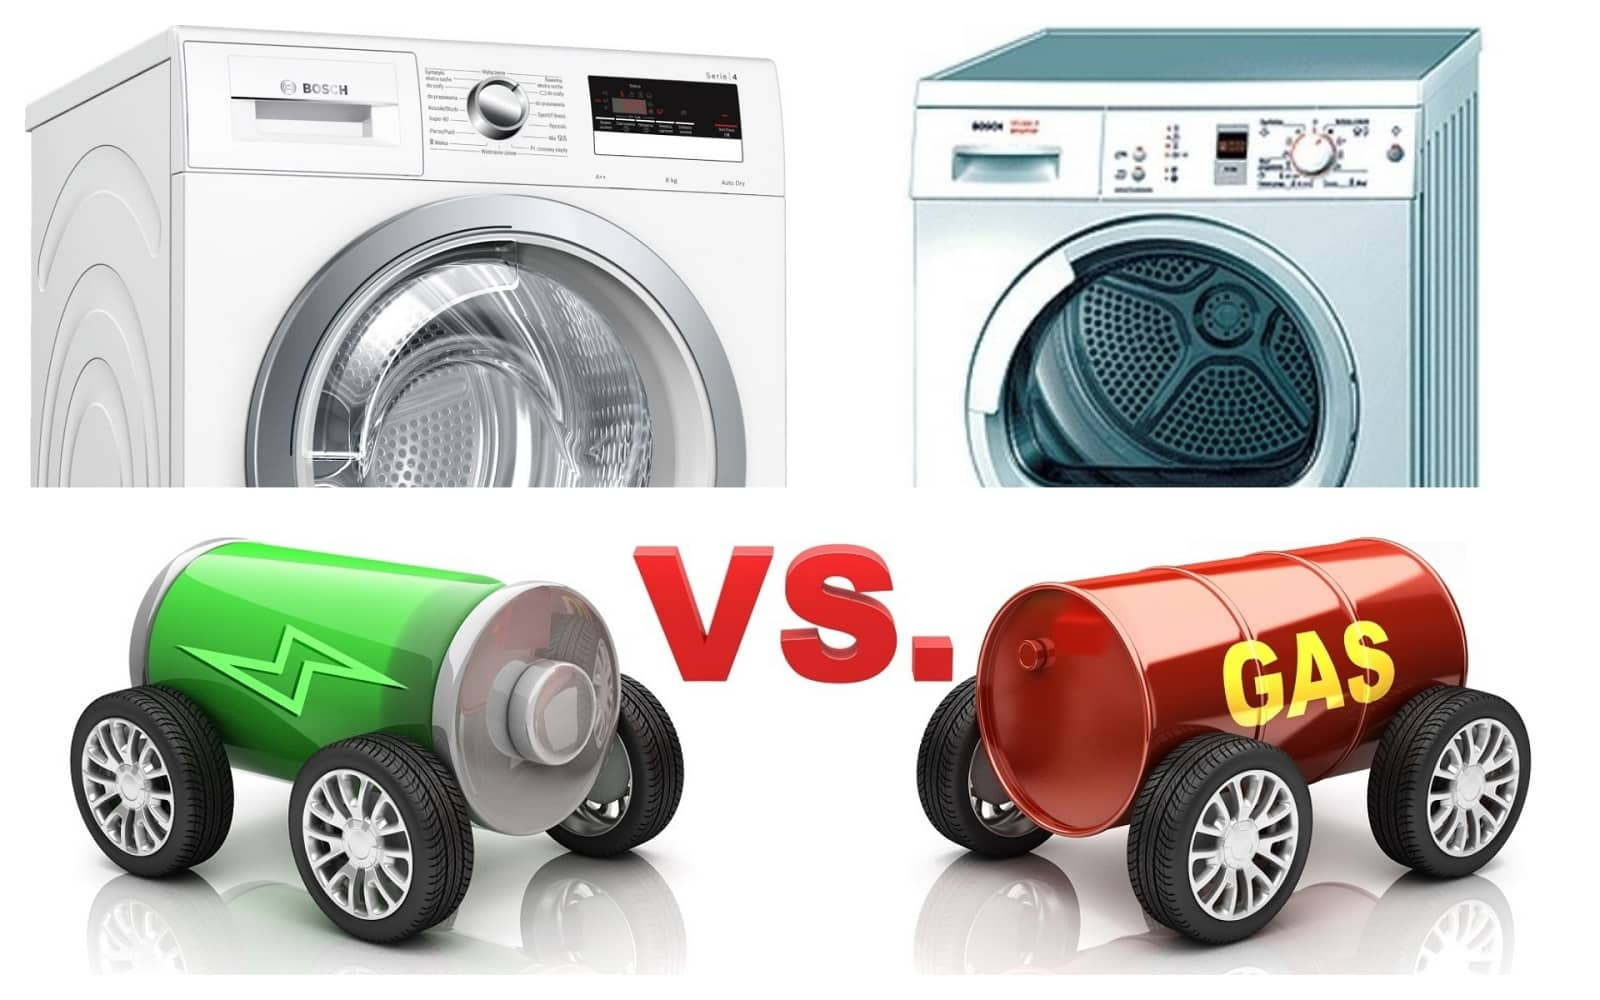 https://devices4home.com/wp-content/uploads/2019/03/dryers-min.jpg